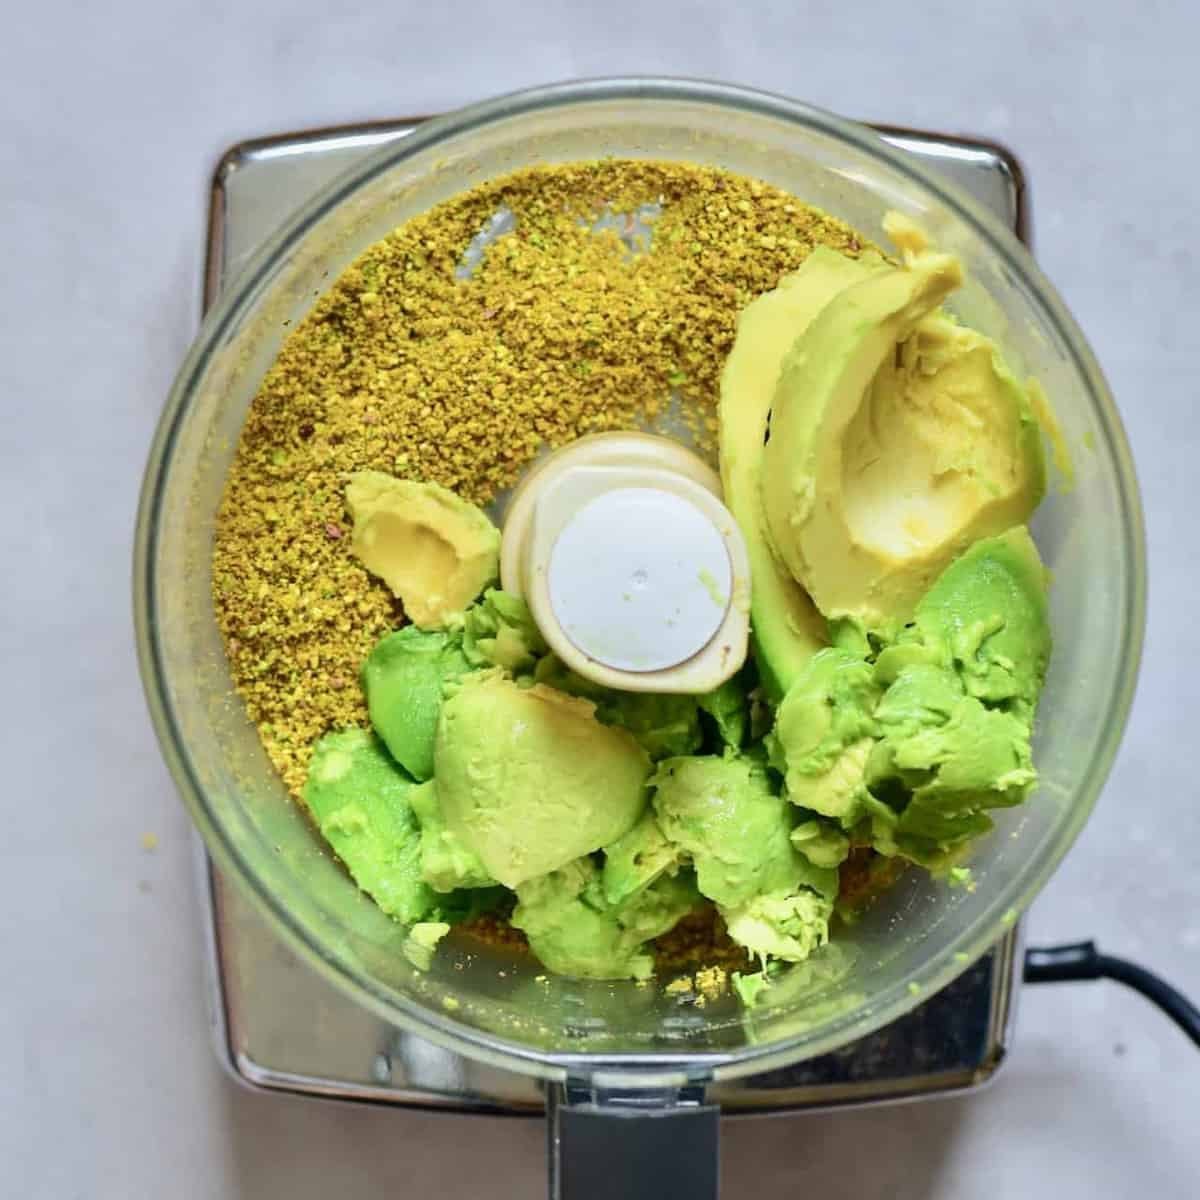 Avocados added to pistachio flour in blender